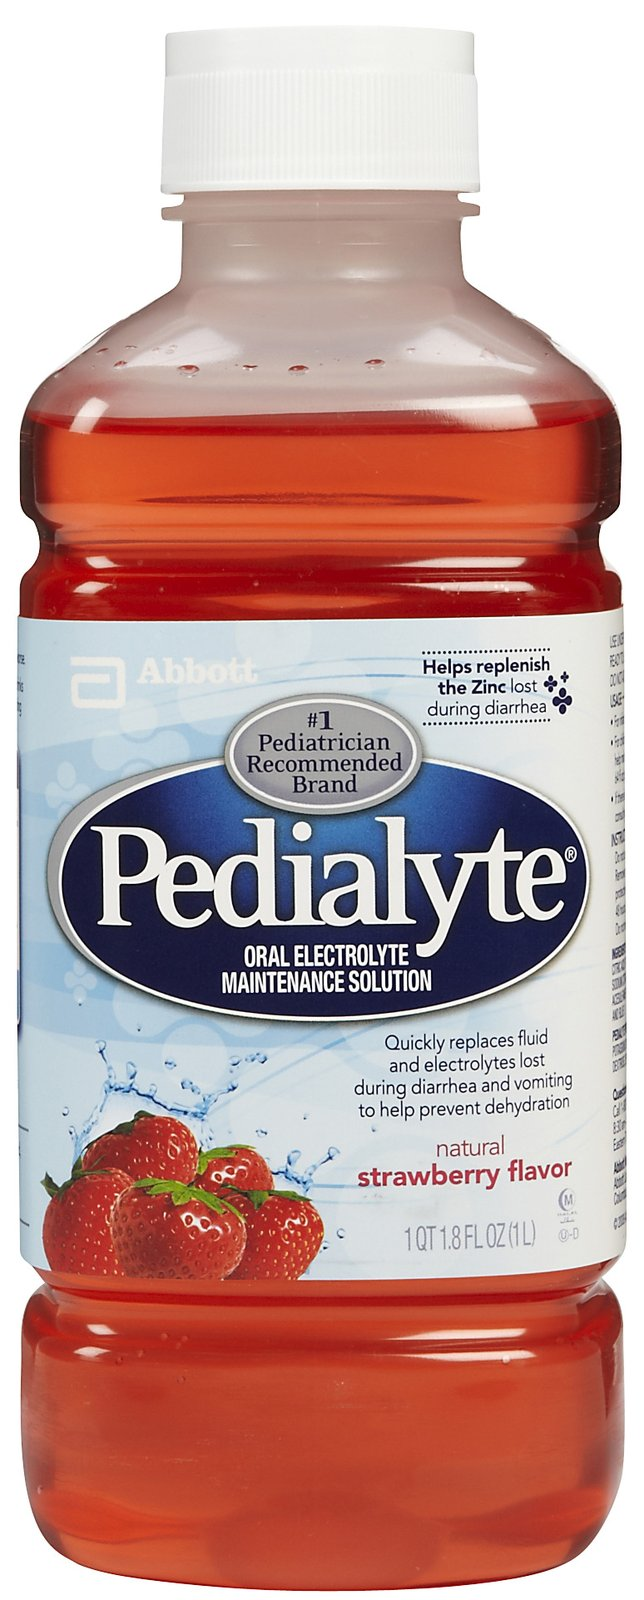 pedialyte for adults